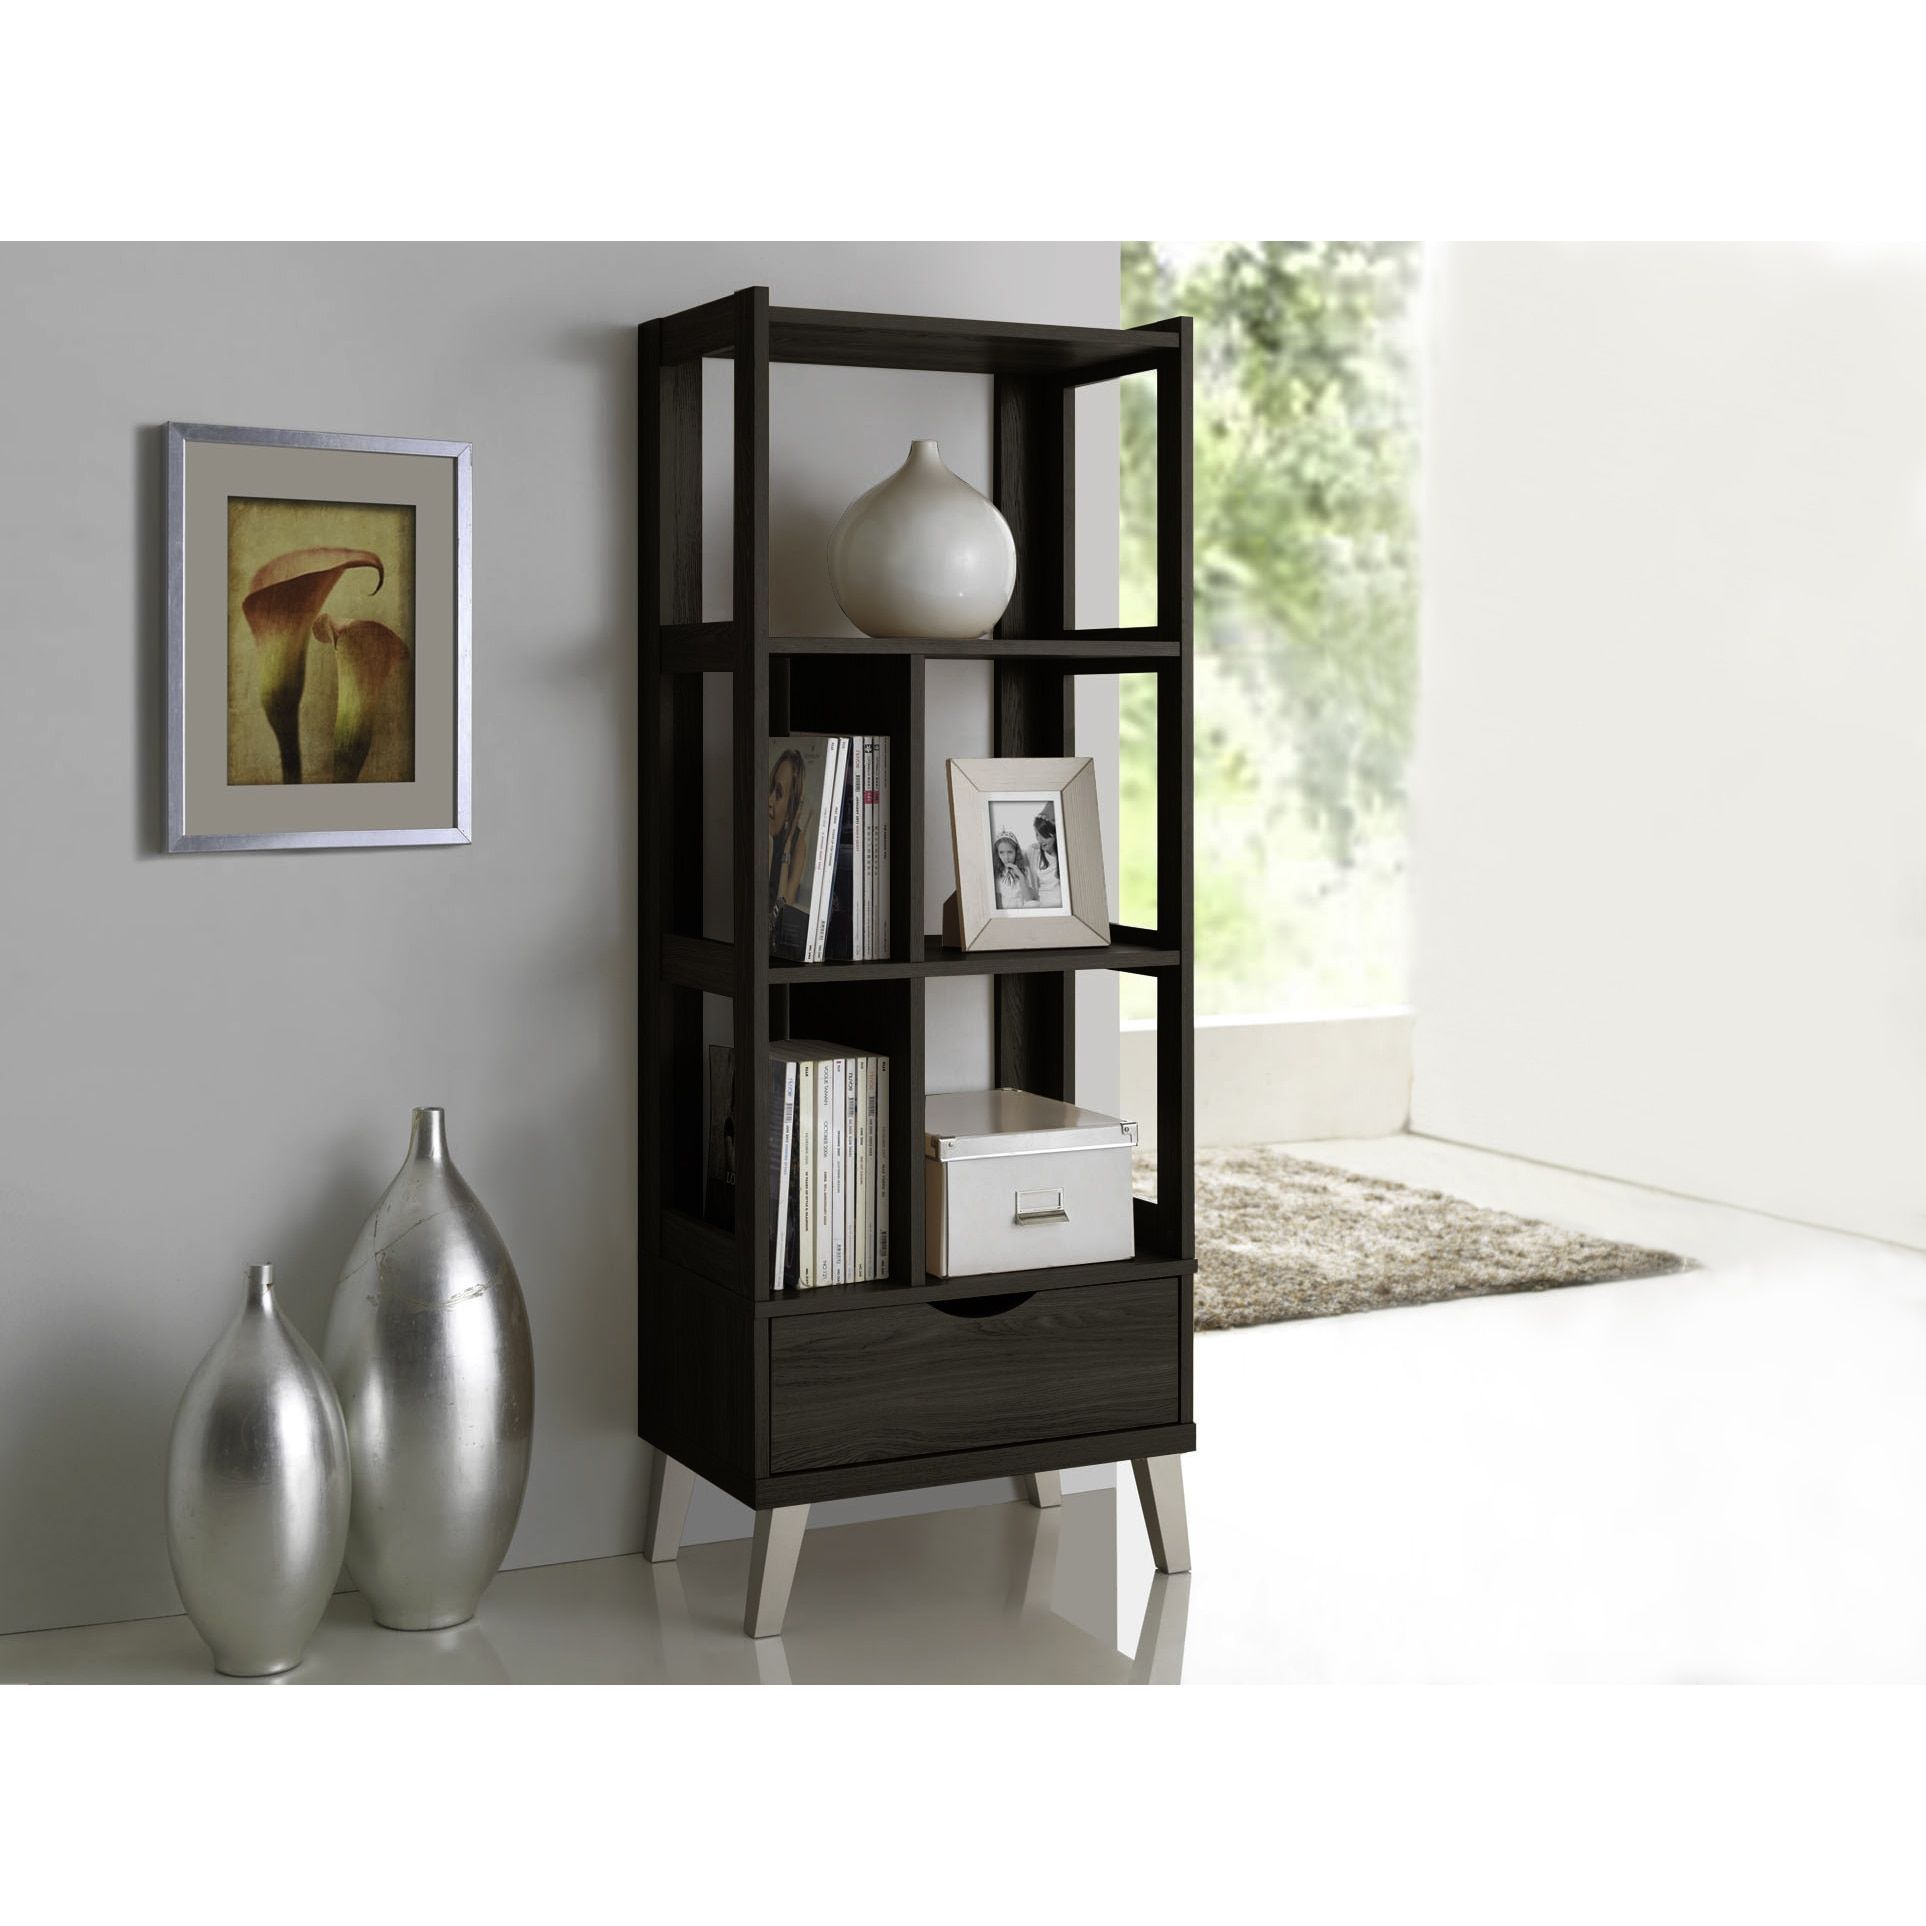 decoration board unique black metal photo bookcases wall nightstand unfinished frame geometric picture white living carpet dining oval of grey big hanging room fur built wooden in size online mirror silver wood dark full design table frames bookcase cheap and donwlight x rug pattern